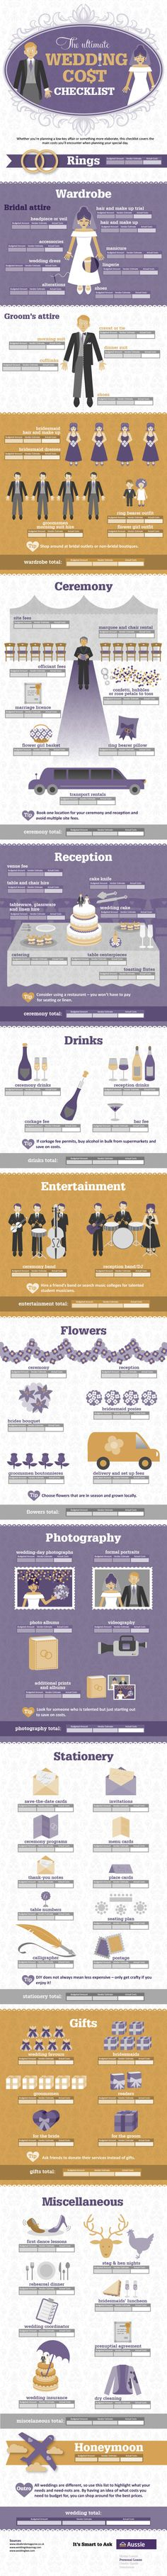 wedding cost checklist! I had no idea there was this much stuff involved...